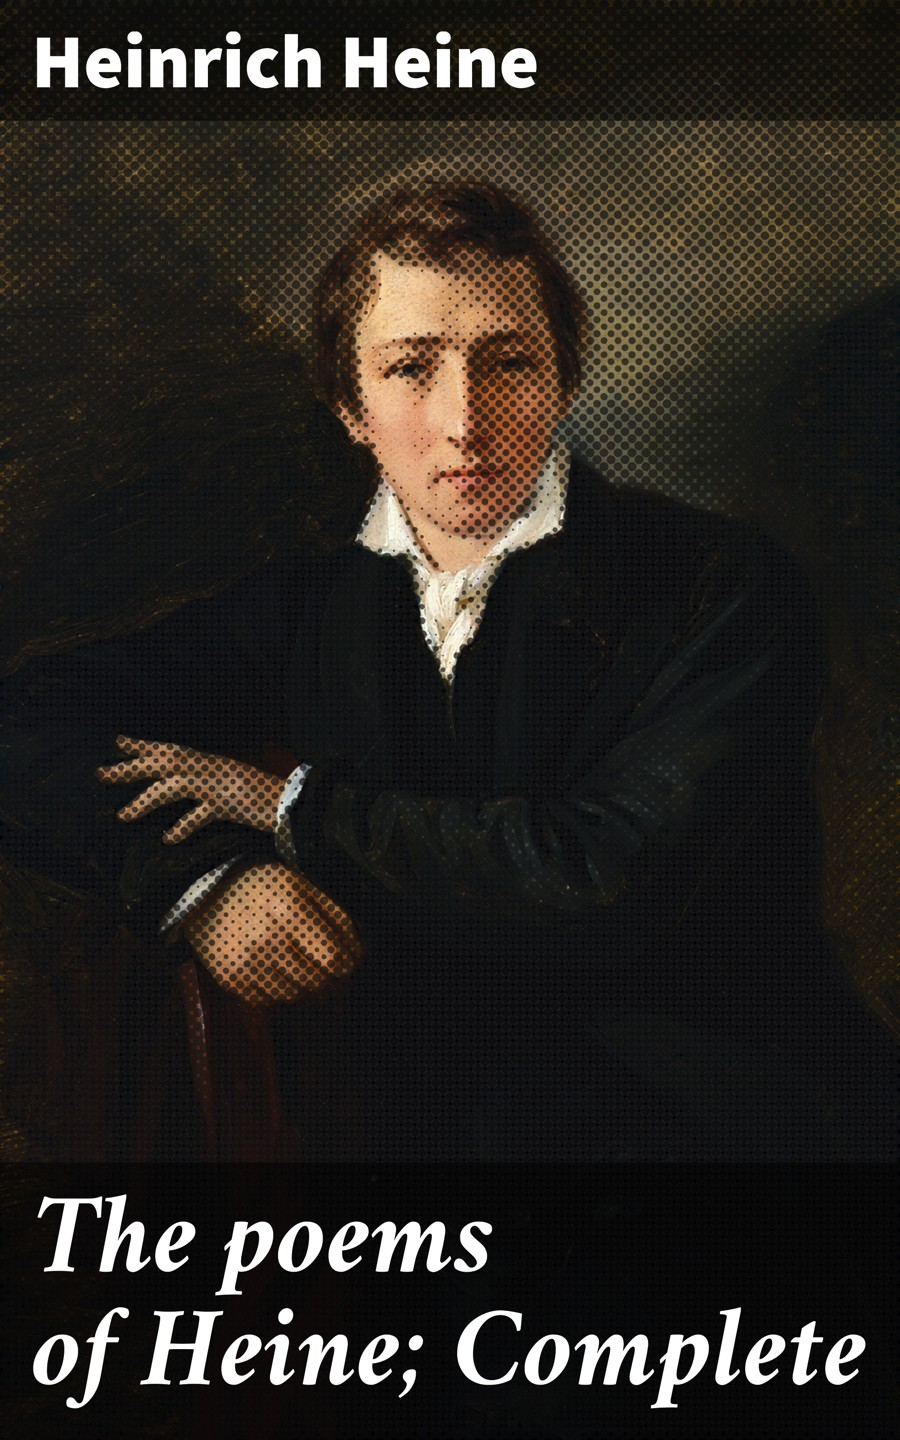 цена на Heinrich Heine The poems of Heine; Complete